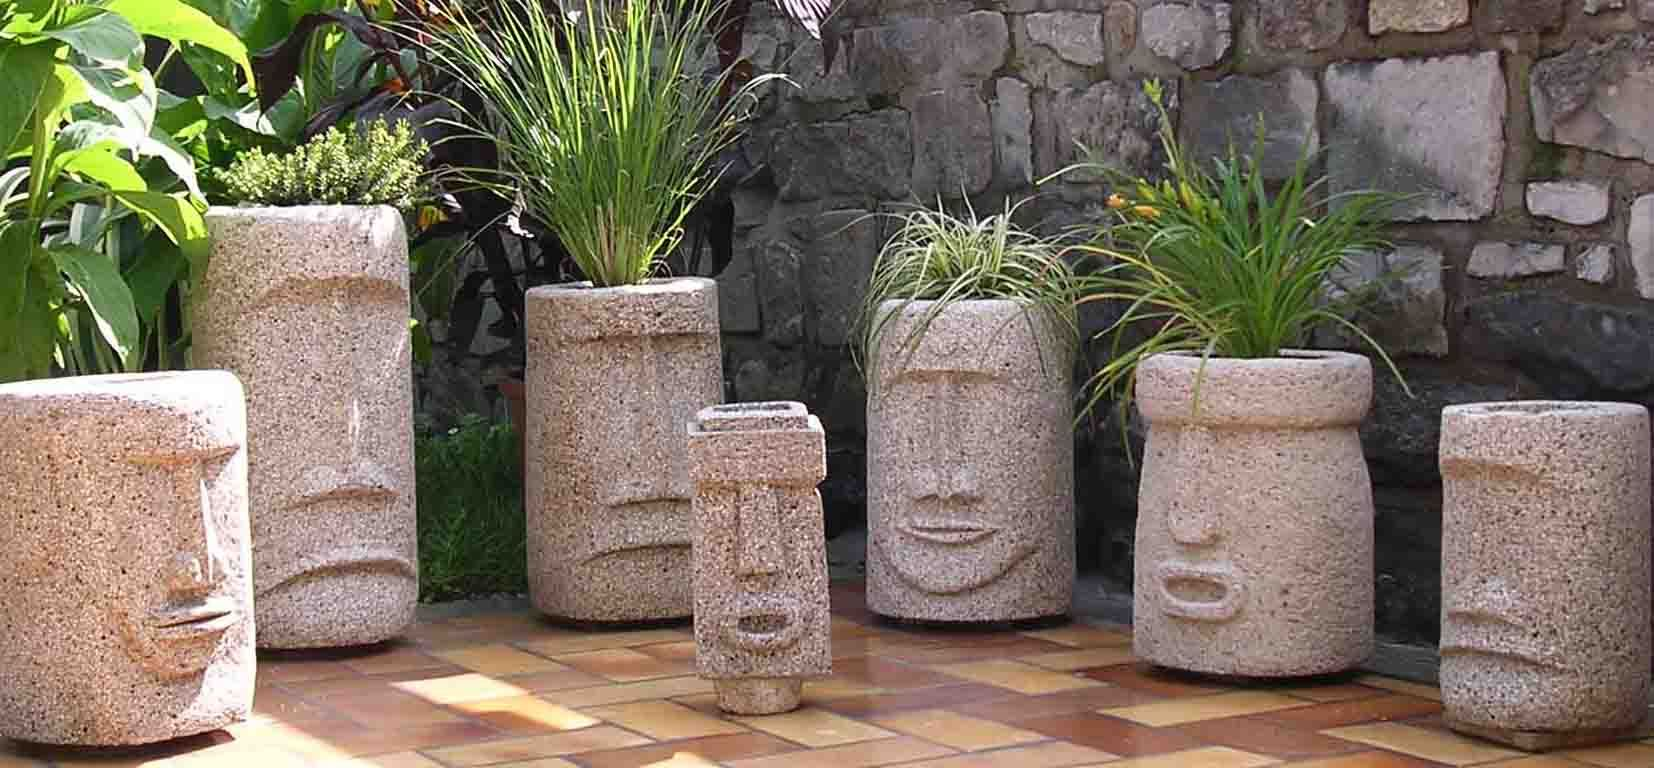 Concrete Garden Planters Hypertufa Projects To Get An Idea Of The Possibilities